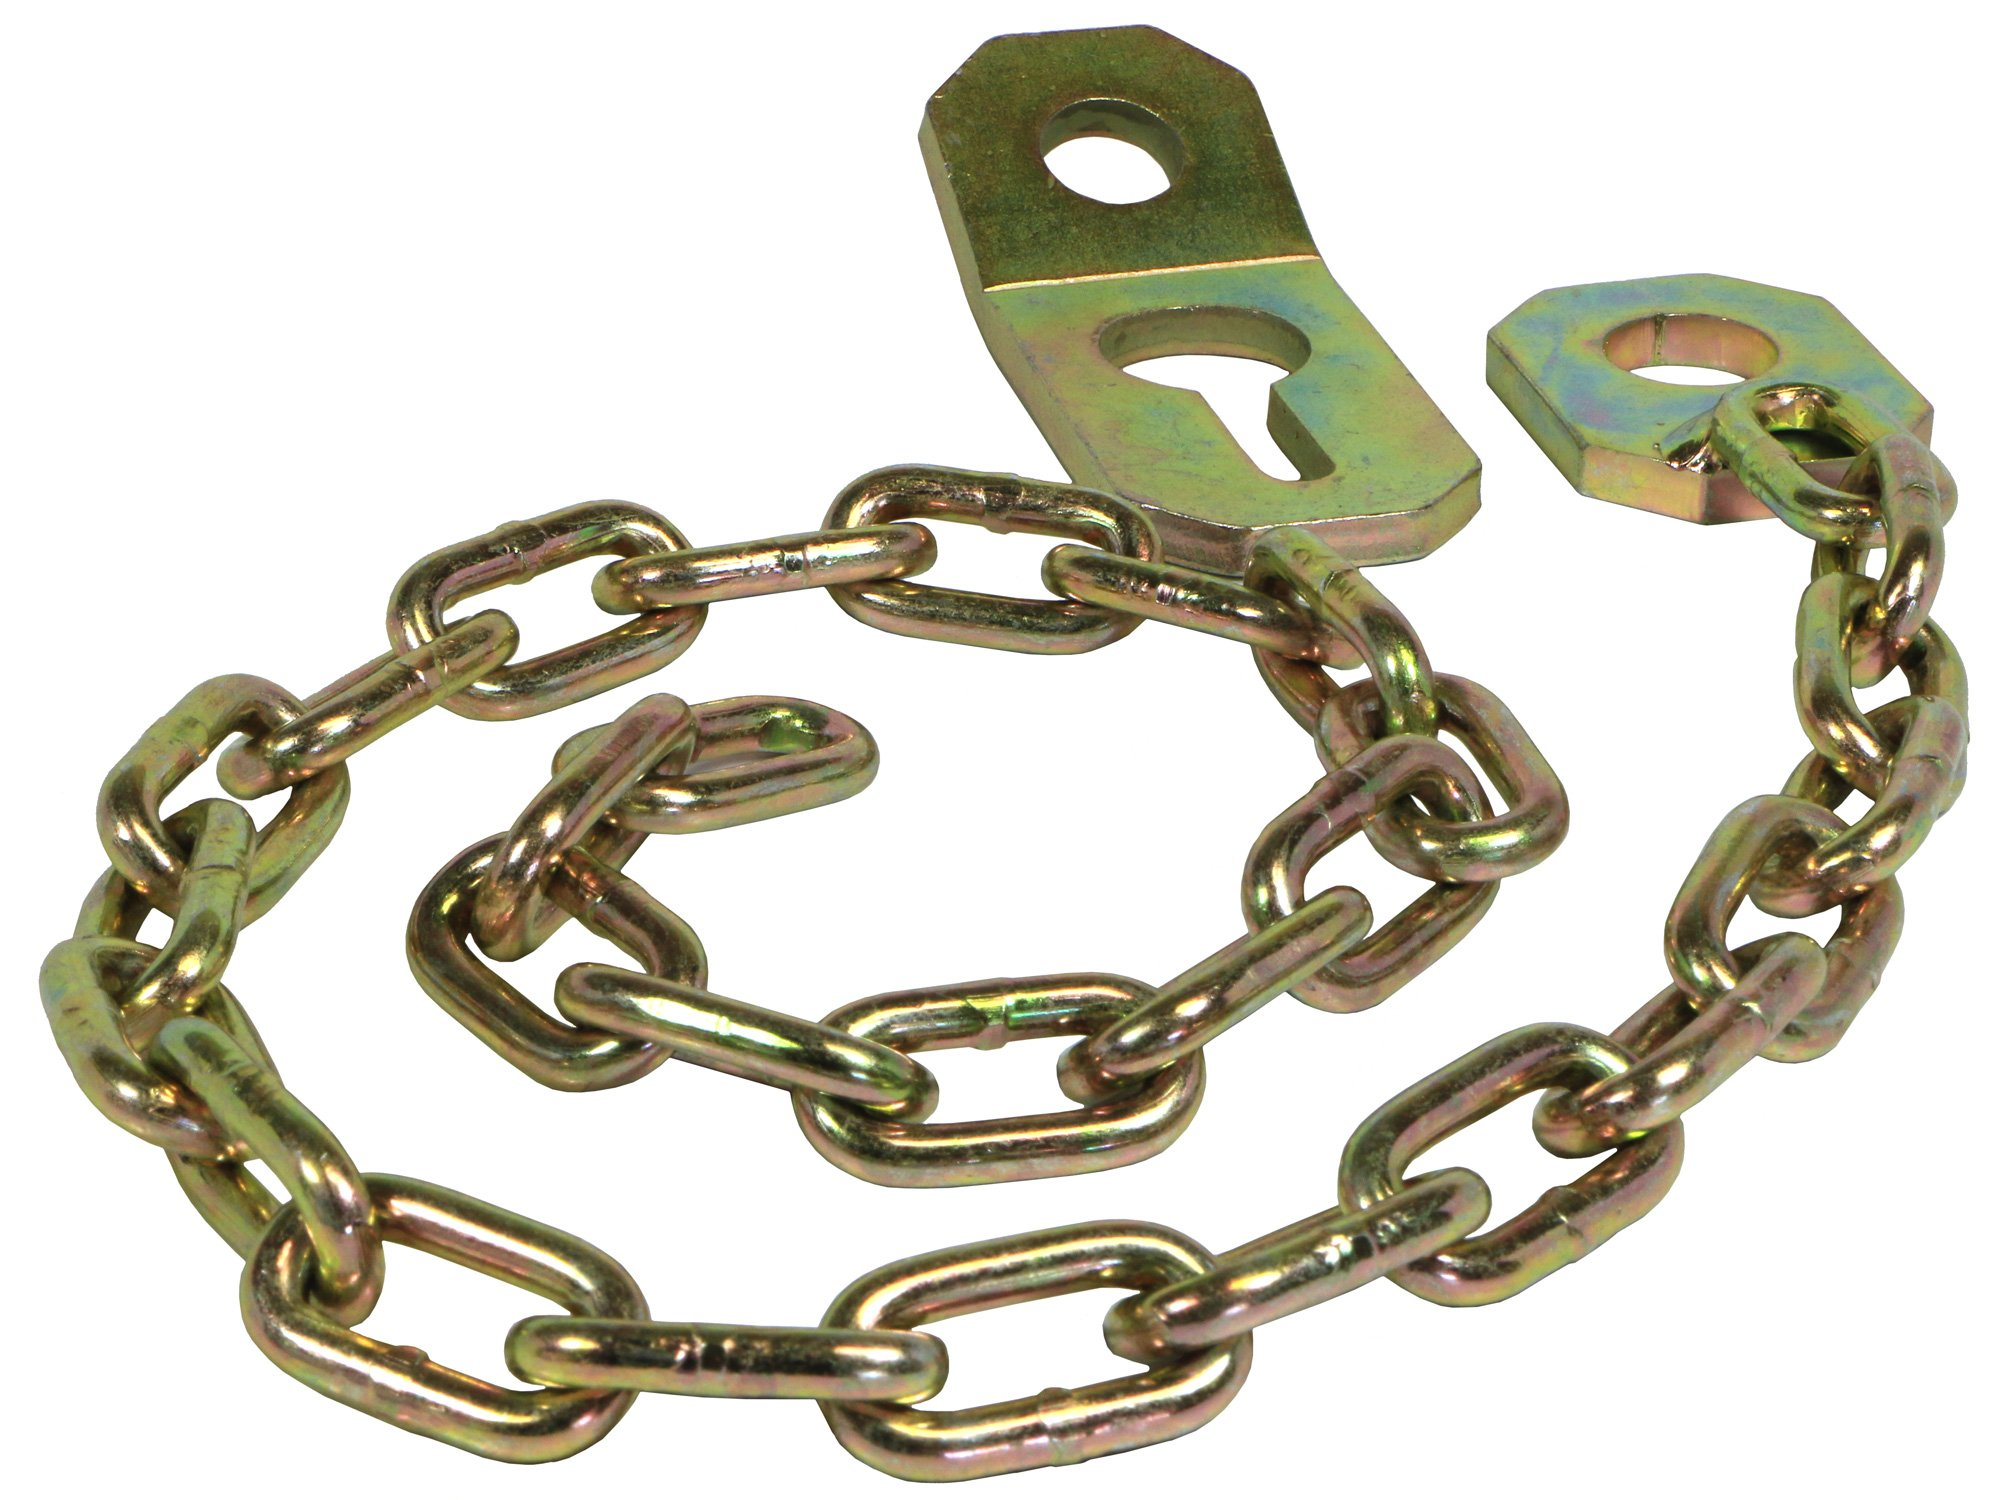 RanchEx 102105 Stay Chain Assembly - Fasten Top Link Pin to Lift Arm Pin, 11'' Cat. 1 by RanchEx